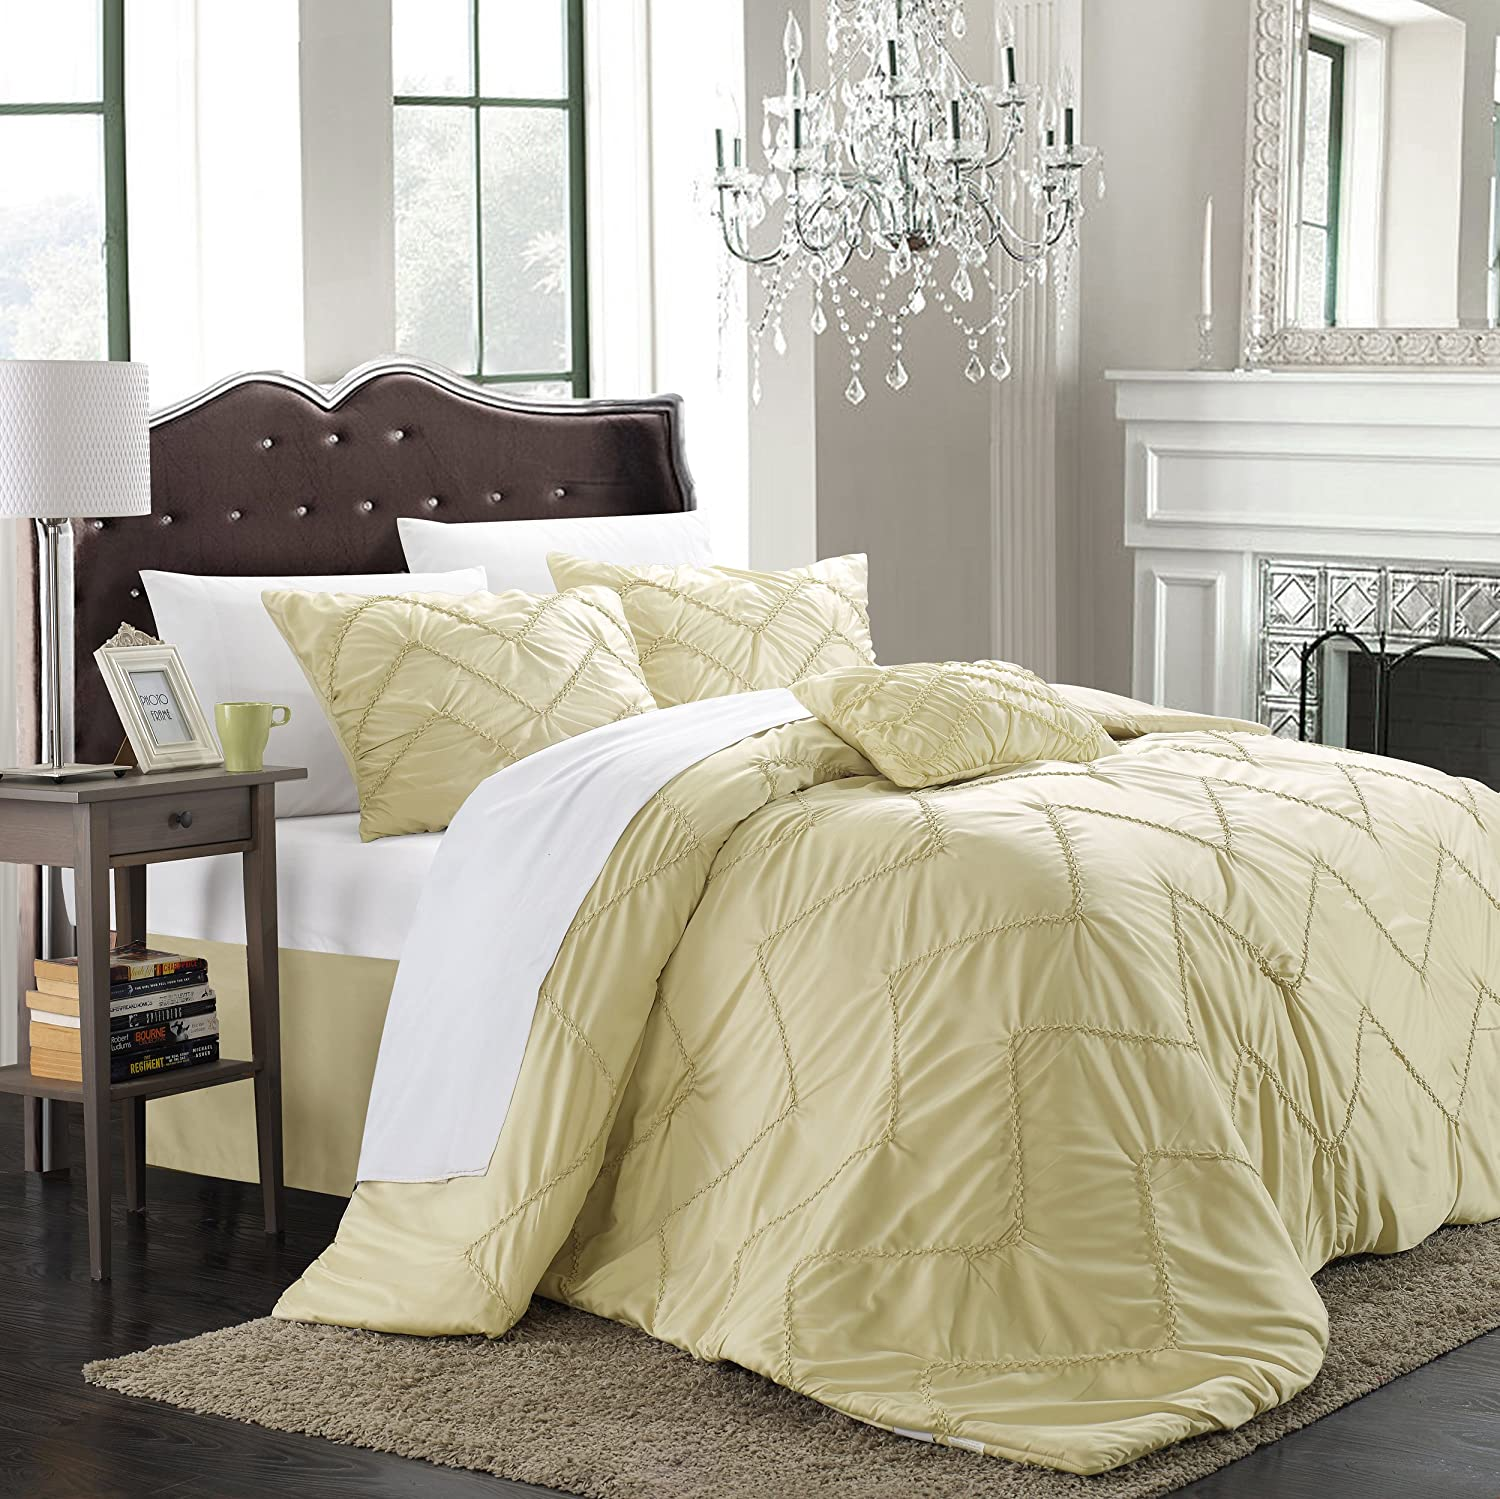 Amazon.com: Chic Home Isabella 5-Piece Comforter Set, King ...